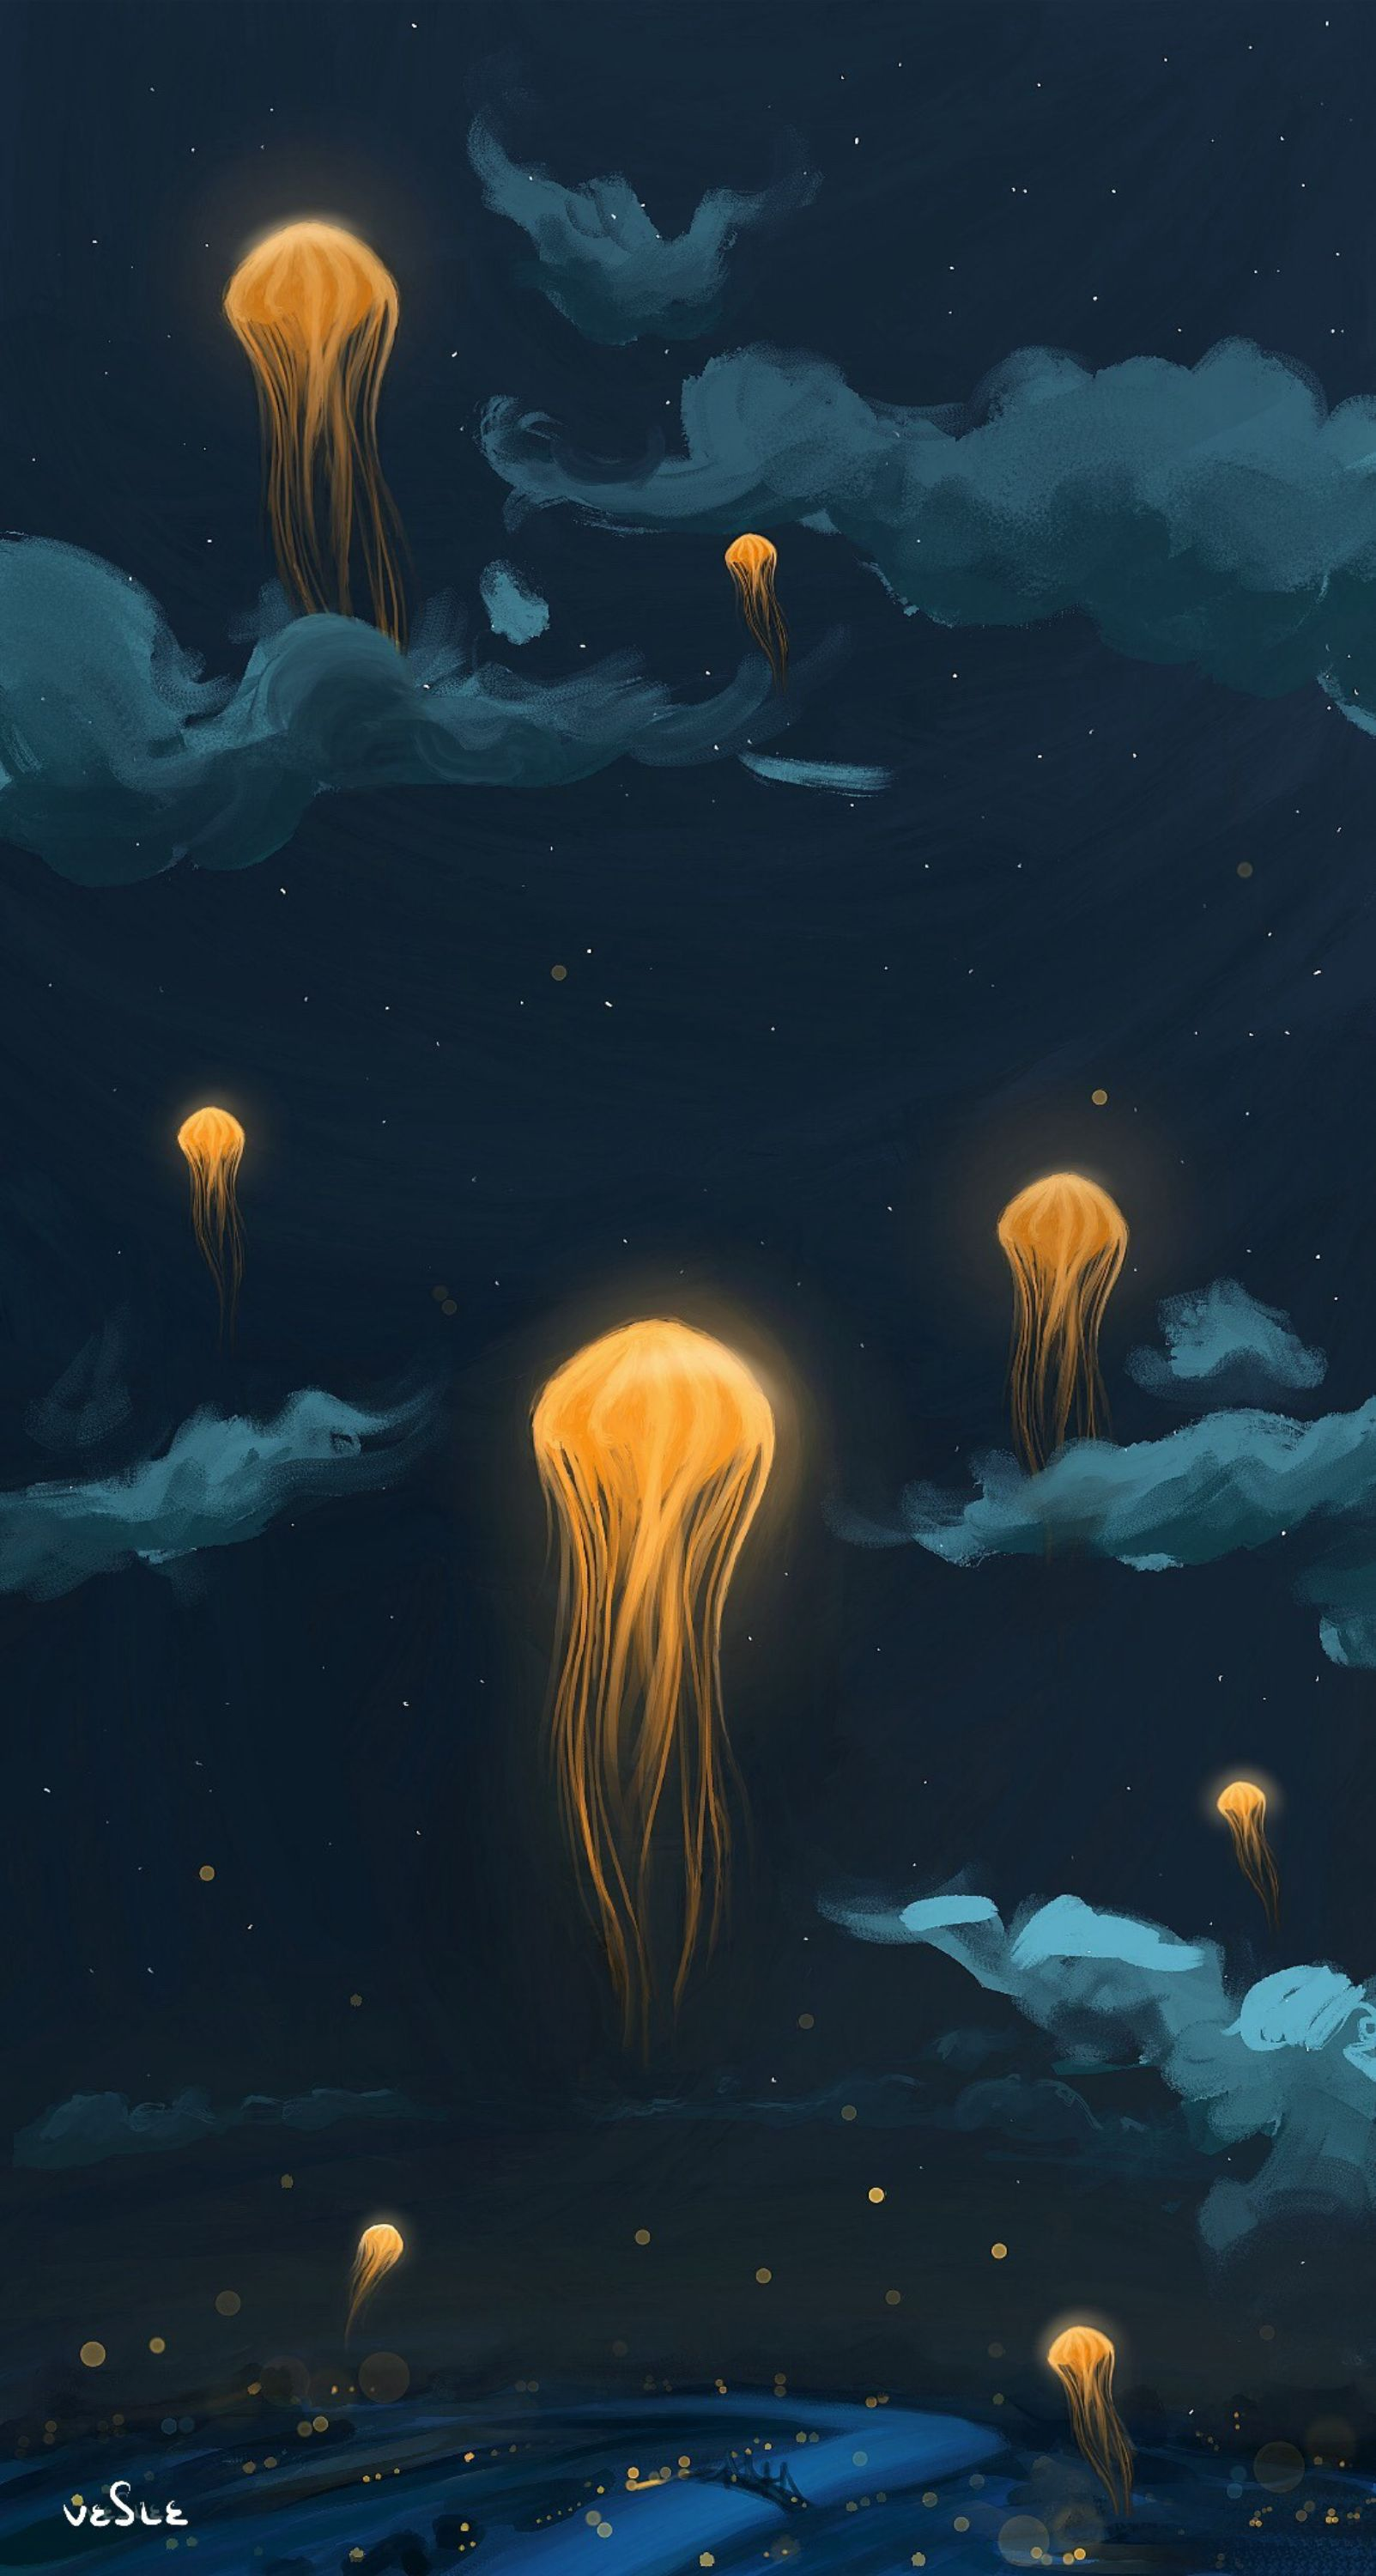 135779 download wallpaper Sky, Art, Night, Jellyfish, Fantastic, Flashlights screensavers and pictures for free